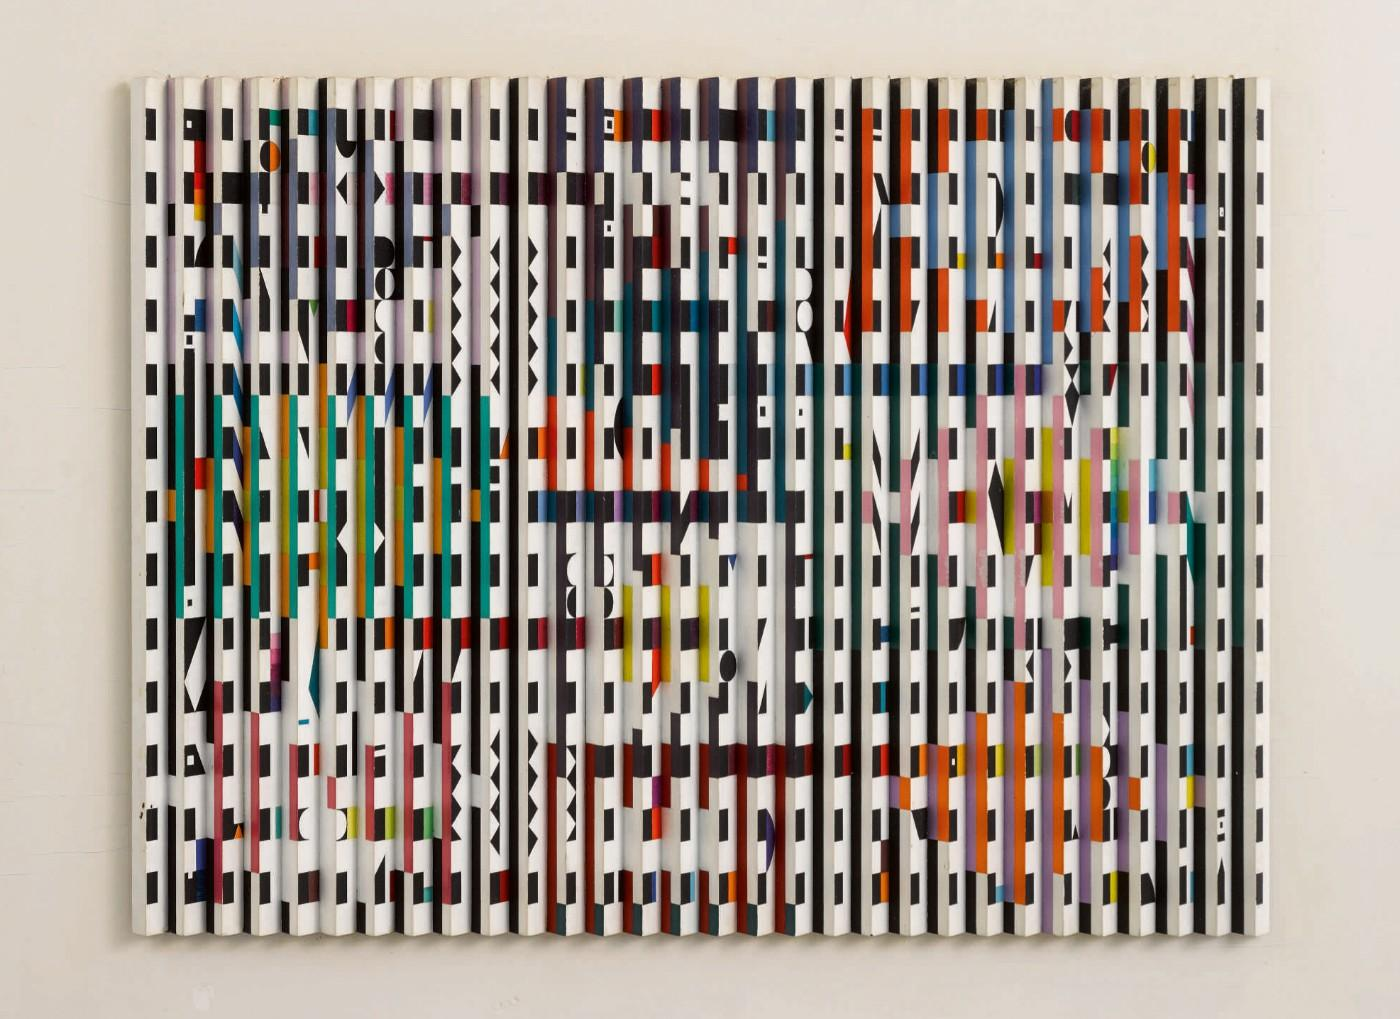 Yaacov Agam, Pace of Time (Time Step), 1966